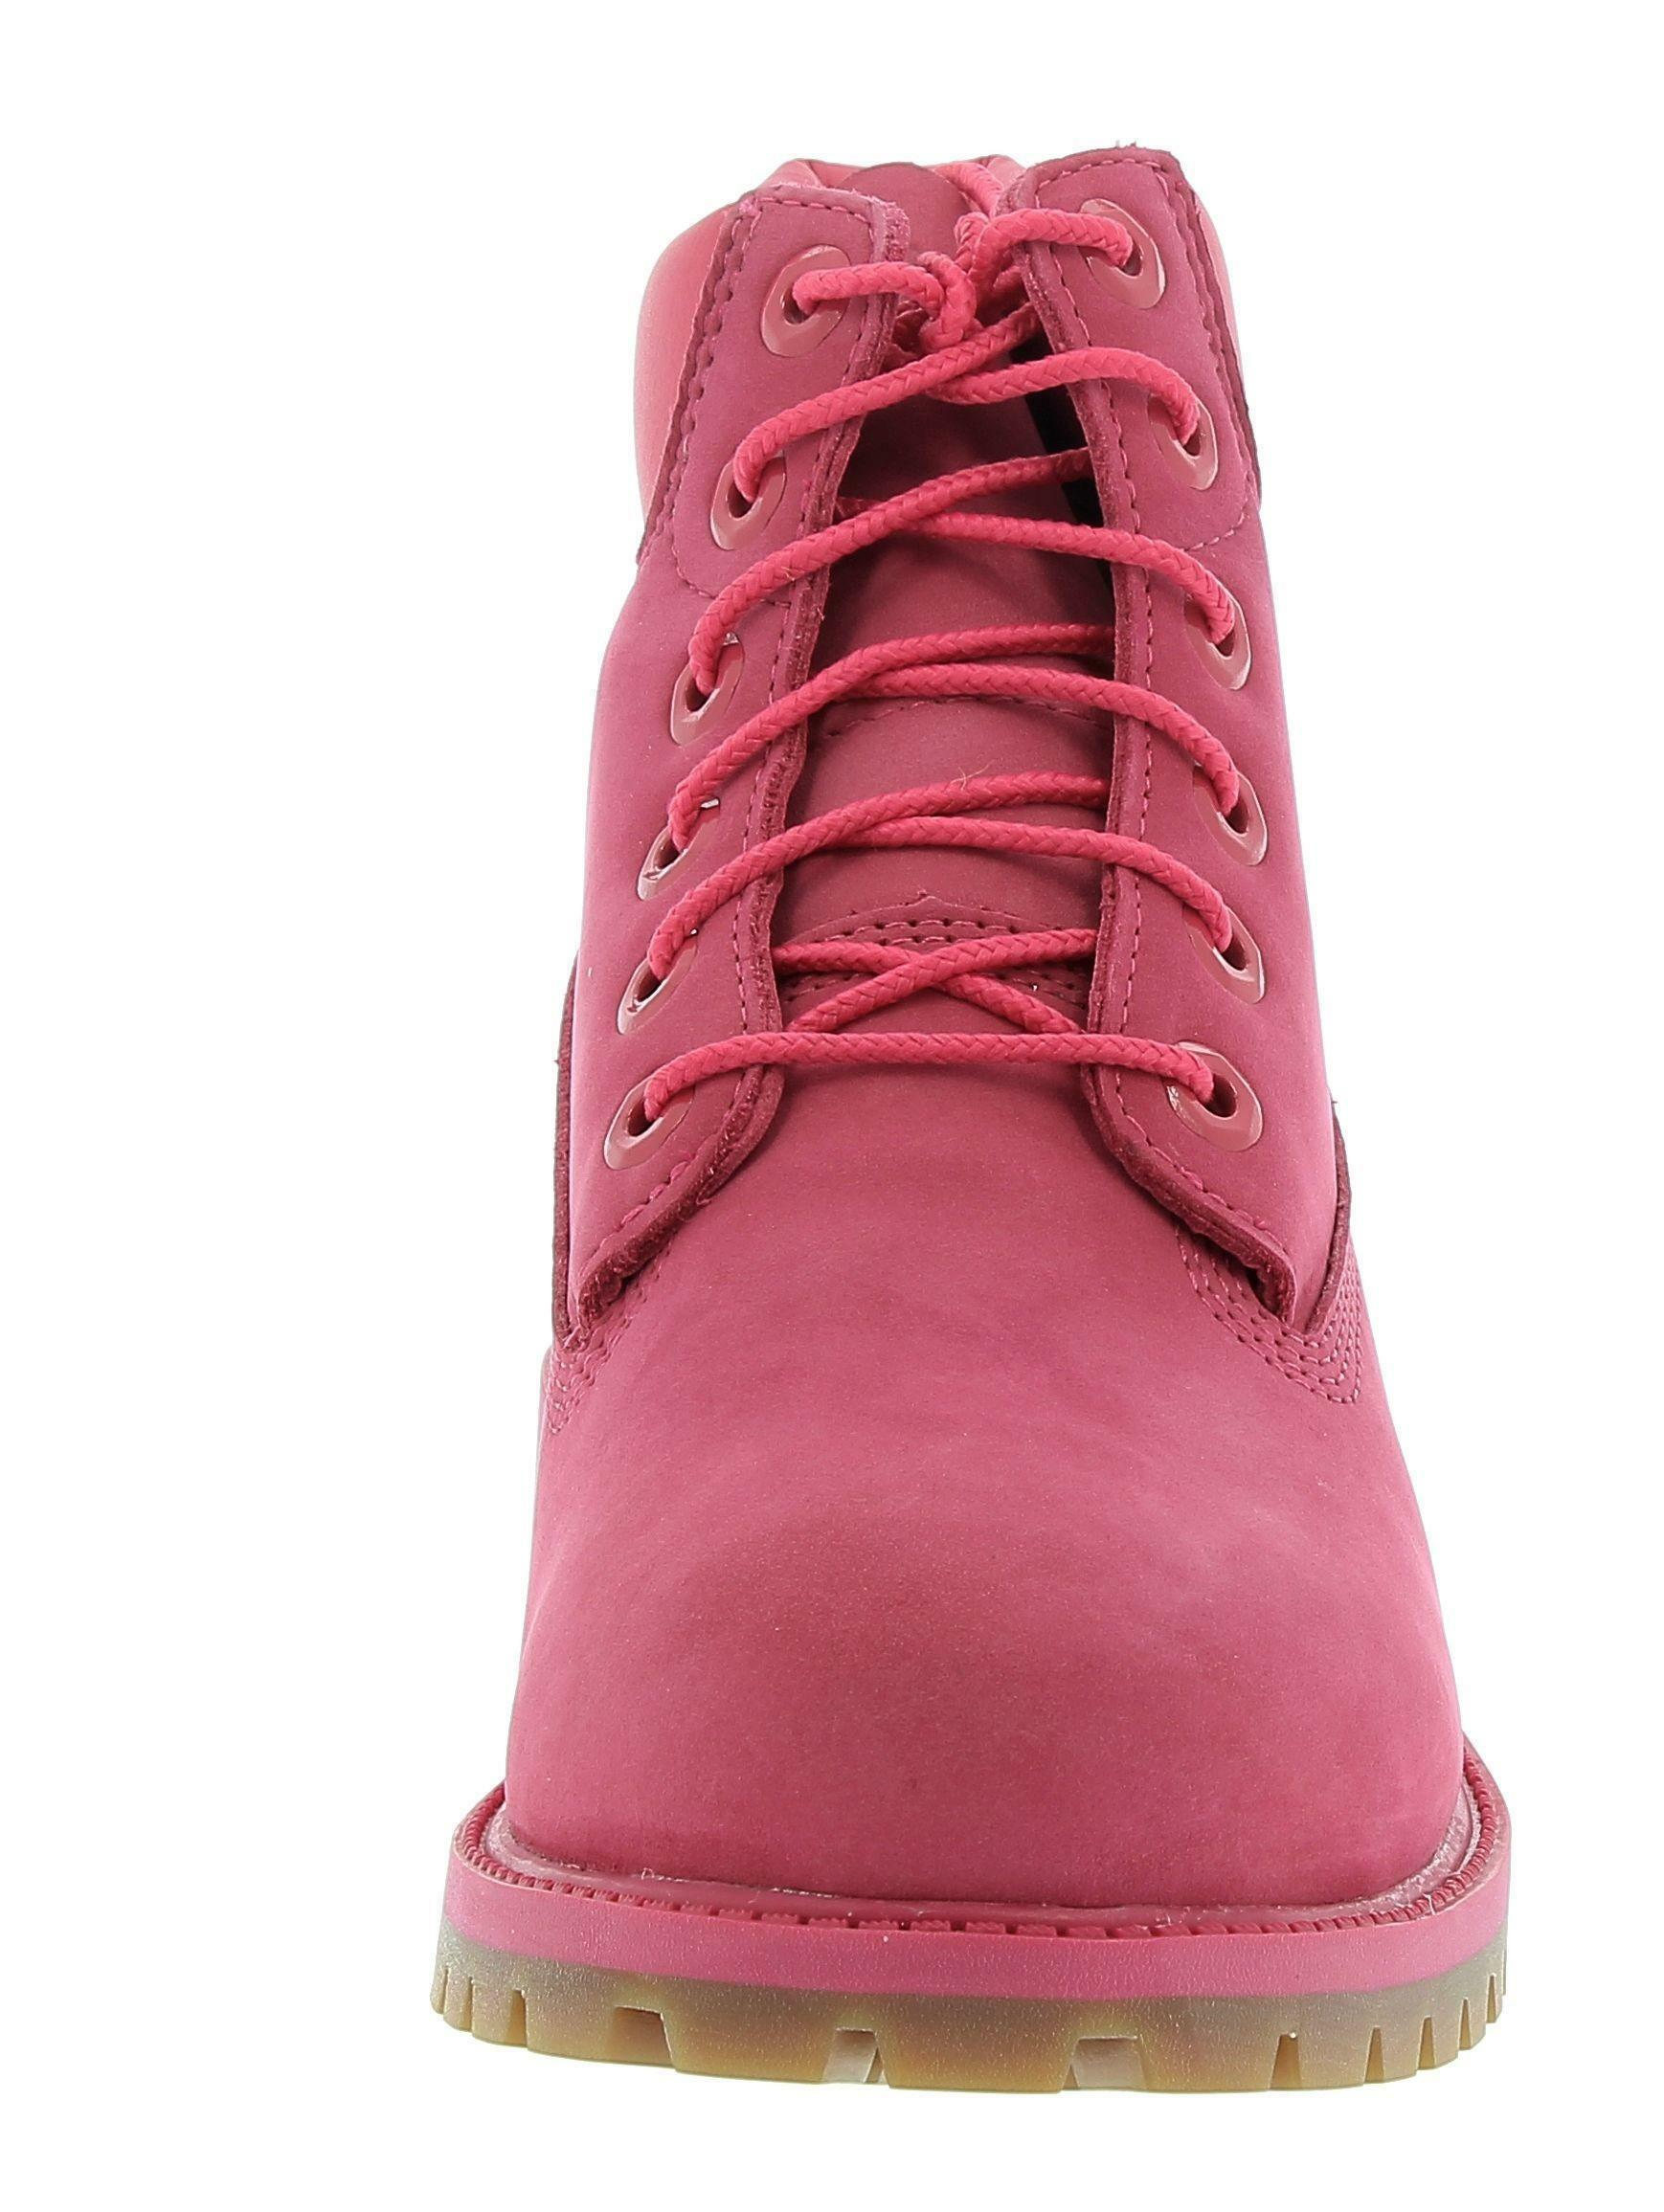 timberland timberland 6 in premium wb boot rose red scarponcino fuxia a10de